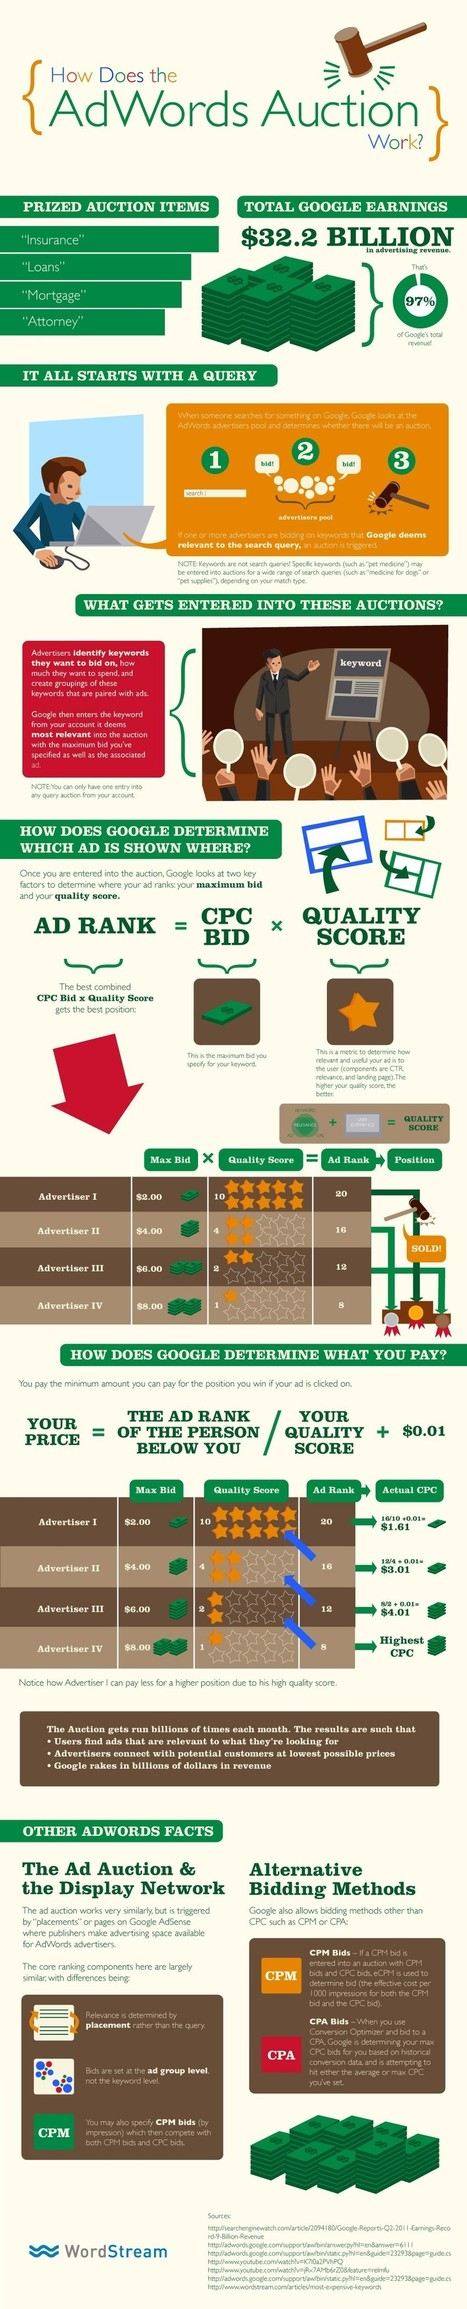 Google Billion Dollar Adword Auction Secrets Revealed #Infographics | Indian Stock Images | Scoop.it